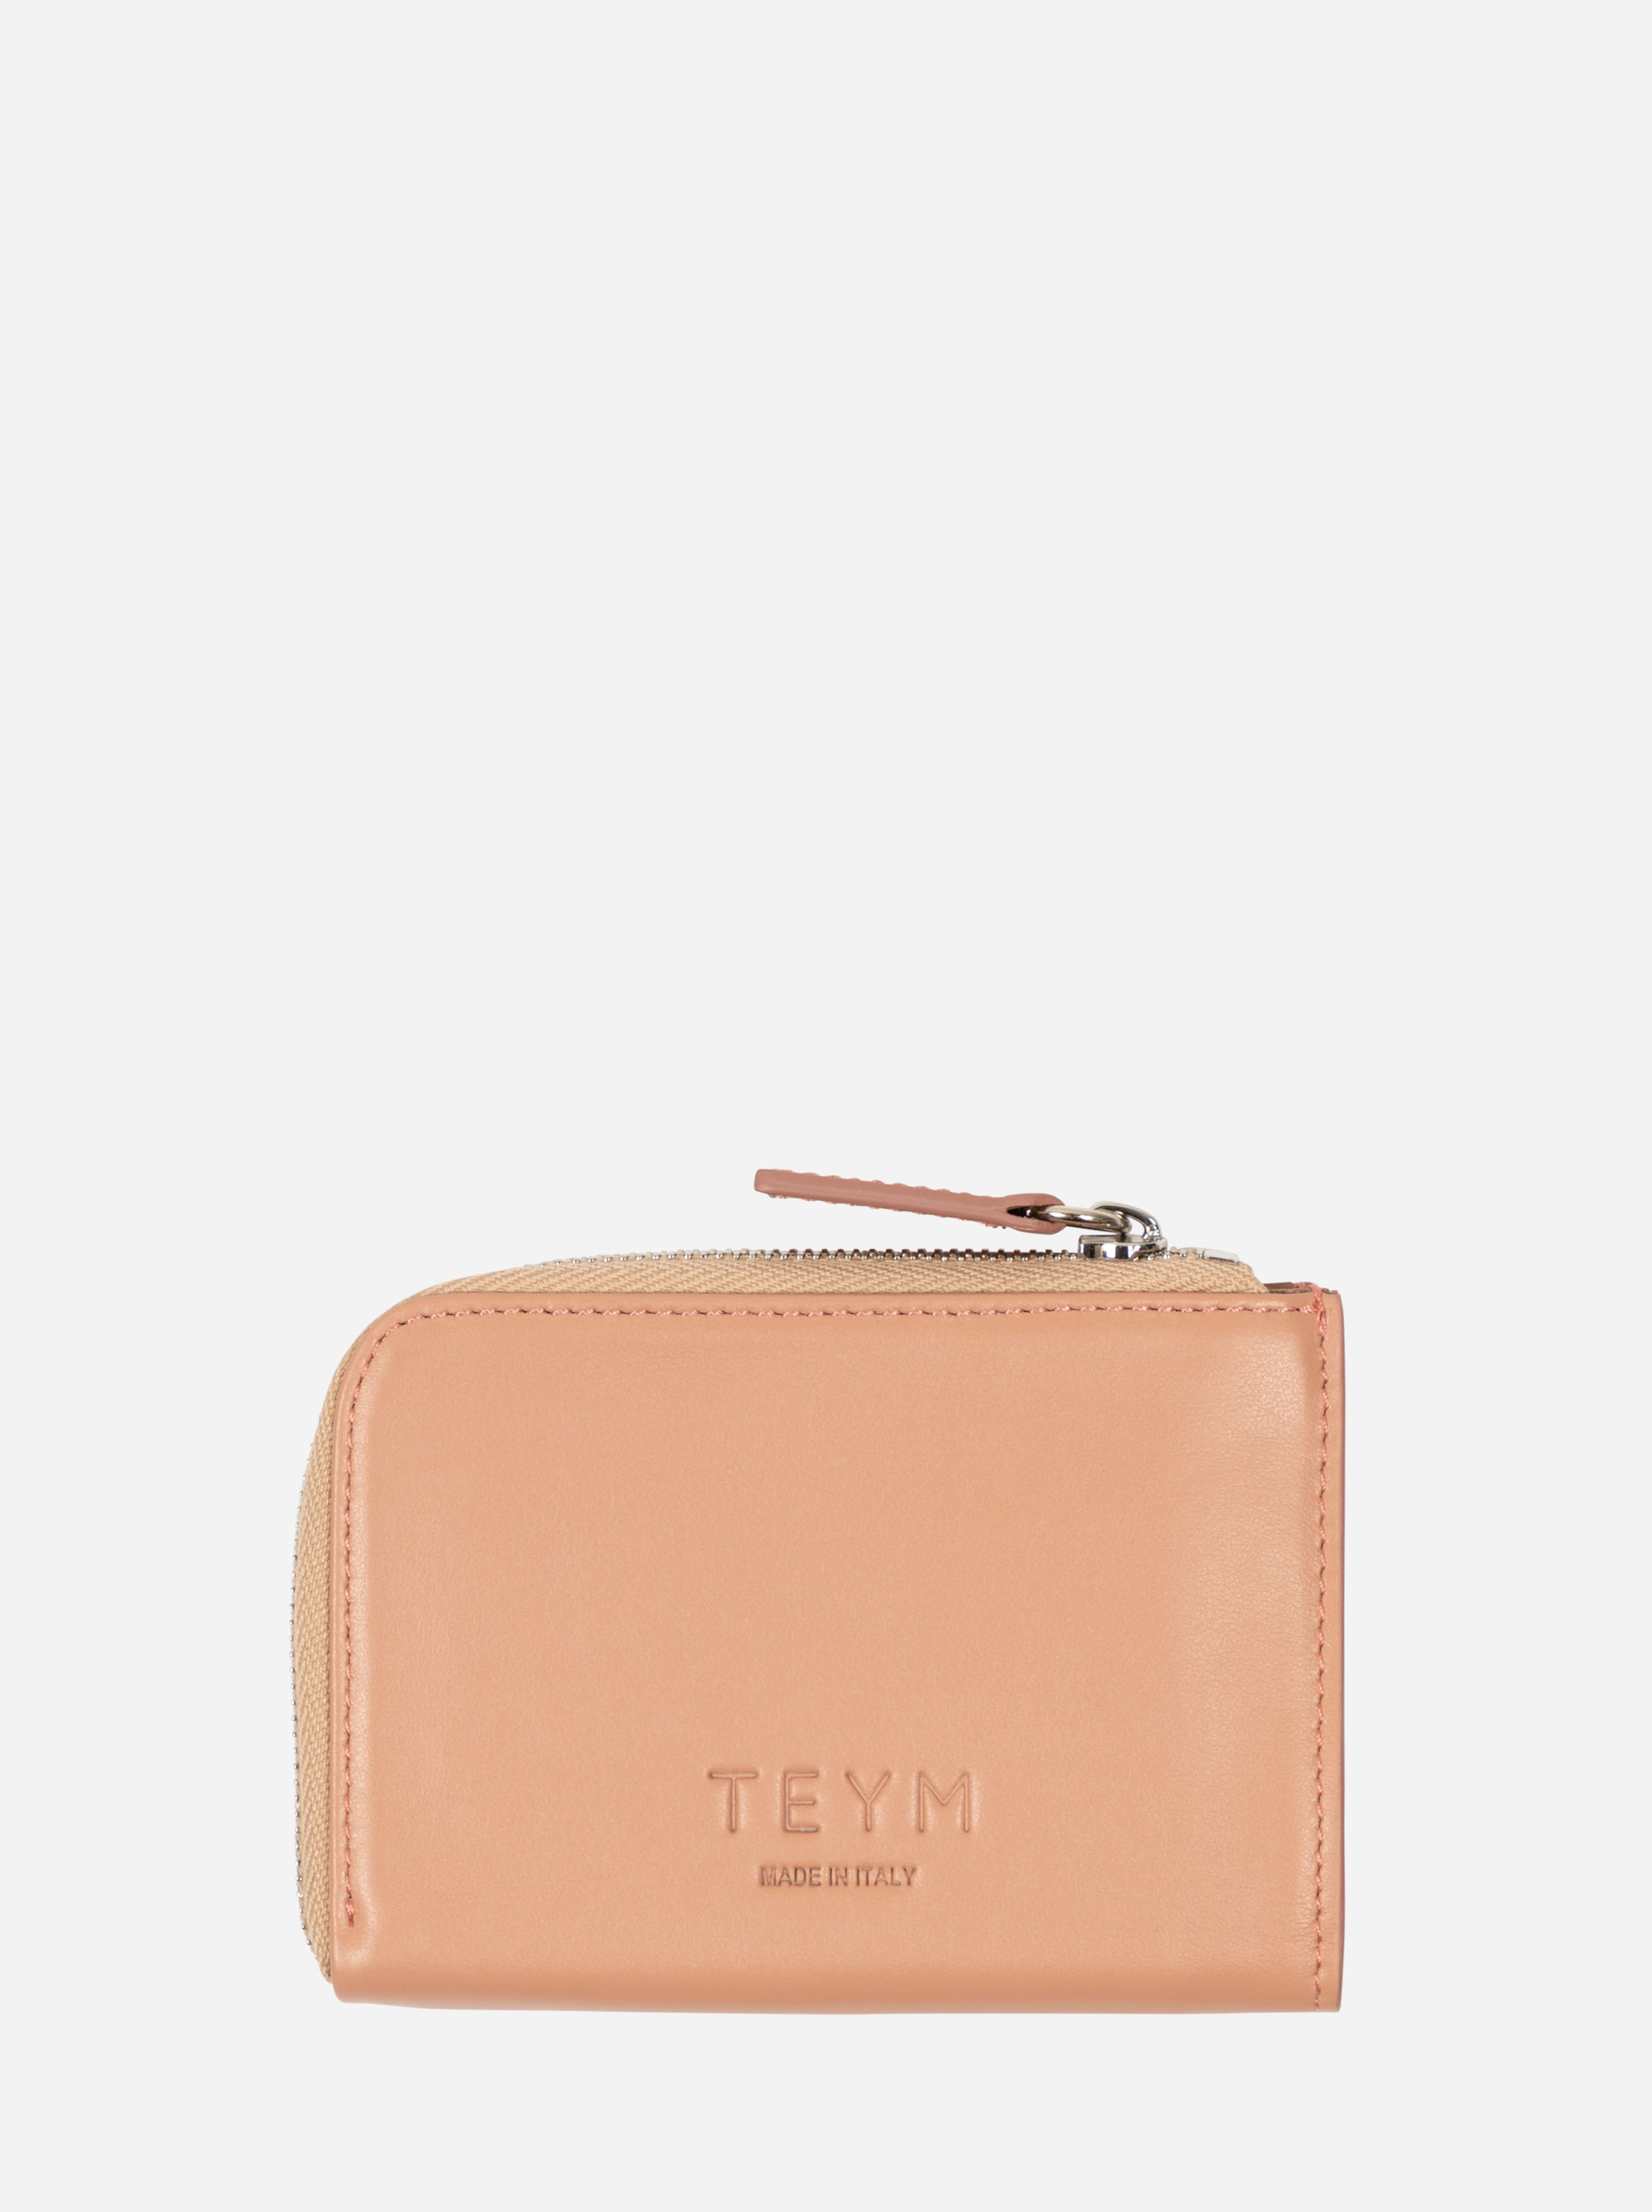 Teym - The Wallet - Pink - 2